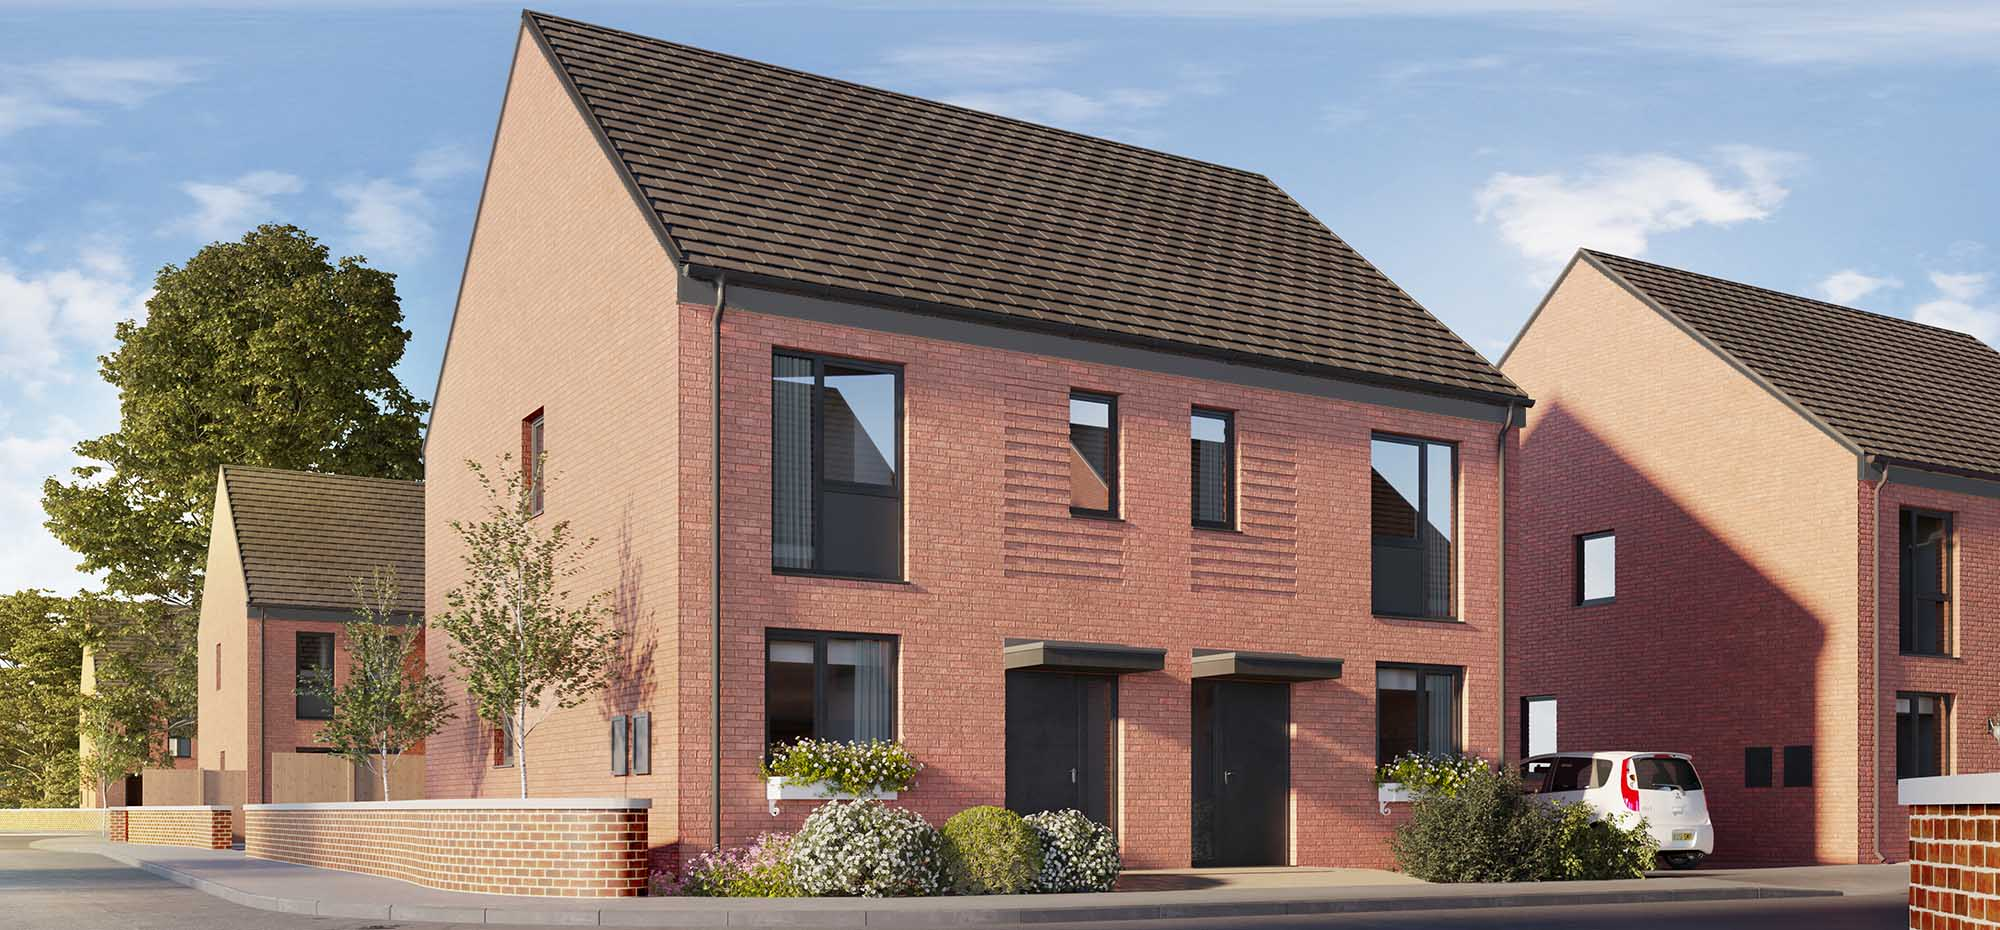 This image shows an external view of the Fern three bedroom, semi-detached house from Shape Homes York.